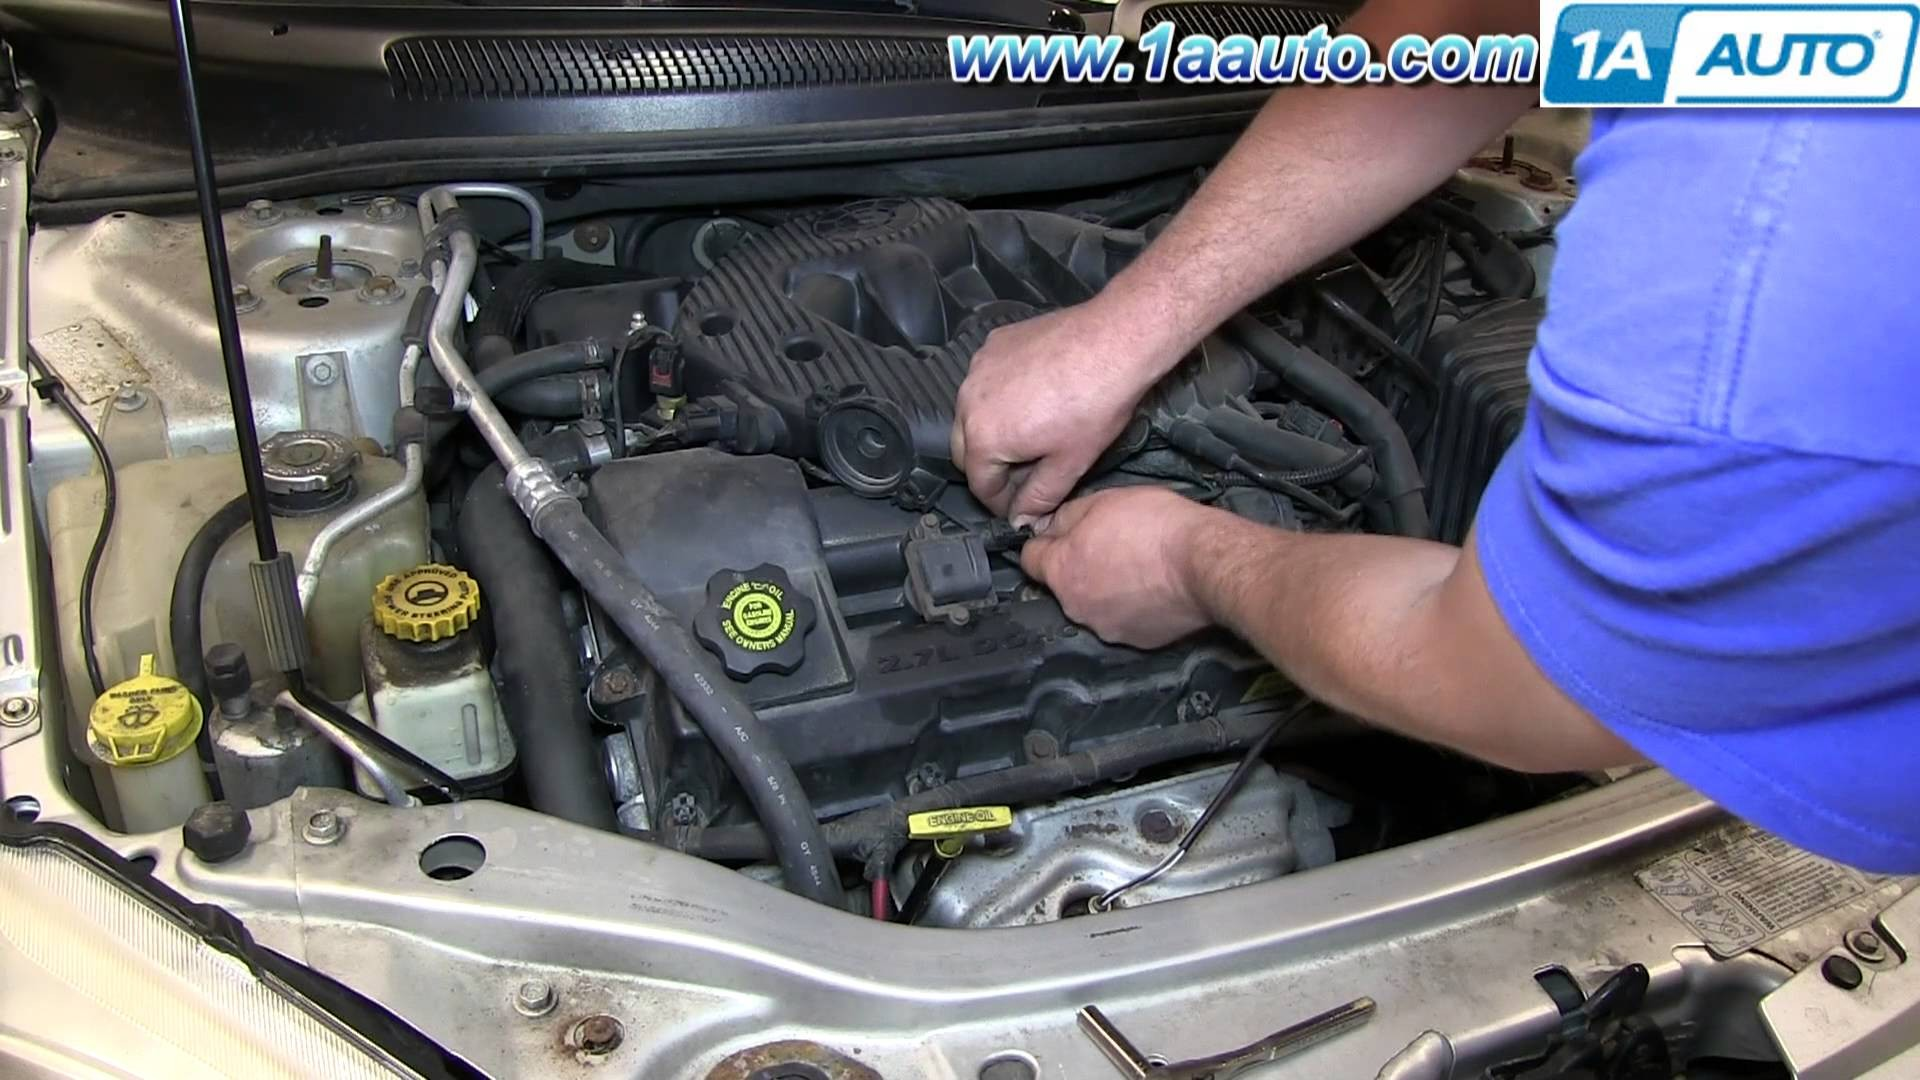 2005 Chrysler town and Country Engine Diagram How to Install Change Replace Spark Plugs 2001 06 Chrysler Sebring Of 2005 Chrysler town and Country Engine Diagram